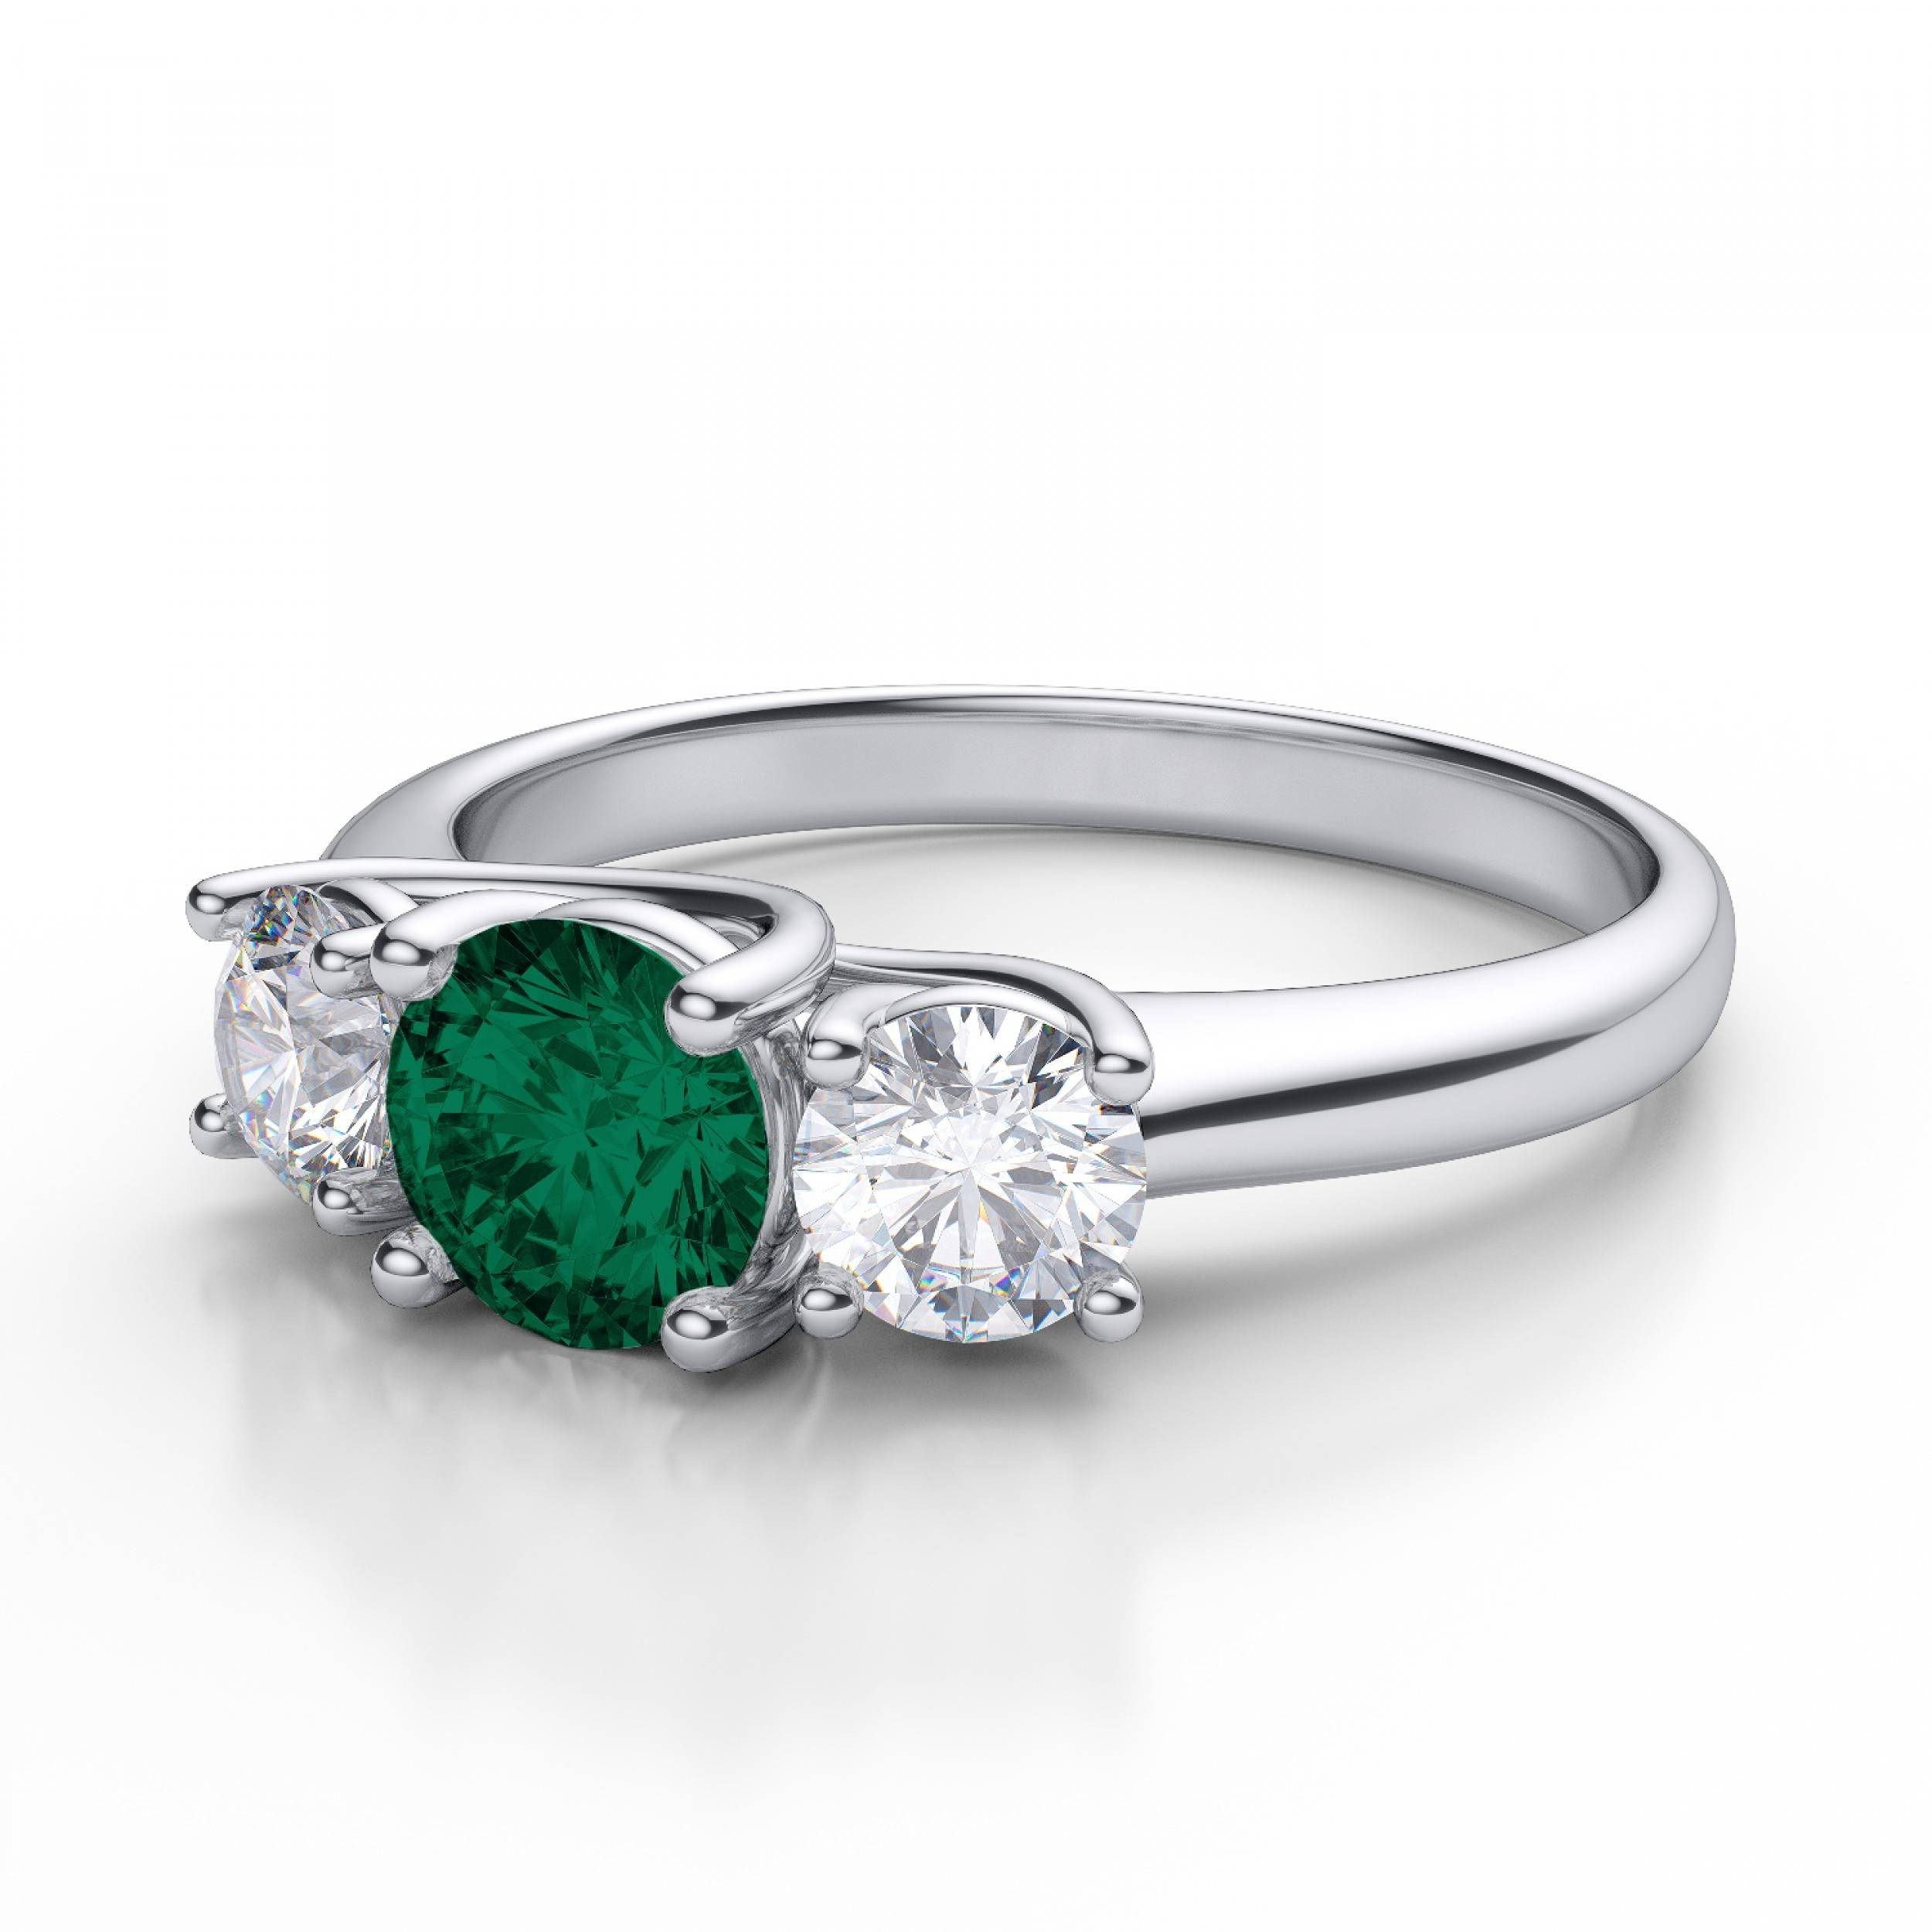 Stone Emerald Gemstone And Diamond Engagement Ring In 14k White Gold For Emerald Engagement Rings White Gold (View 9 of 15)